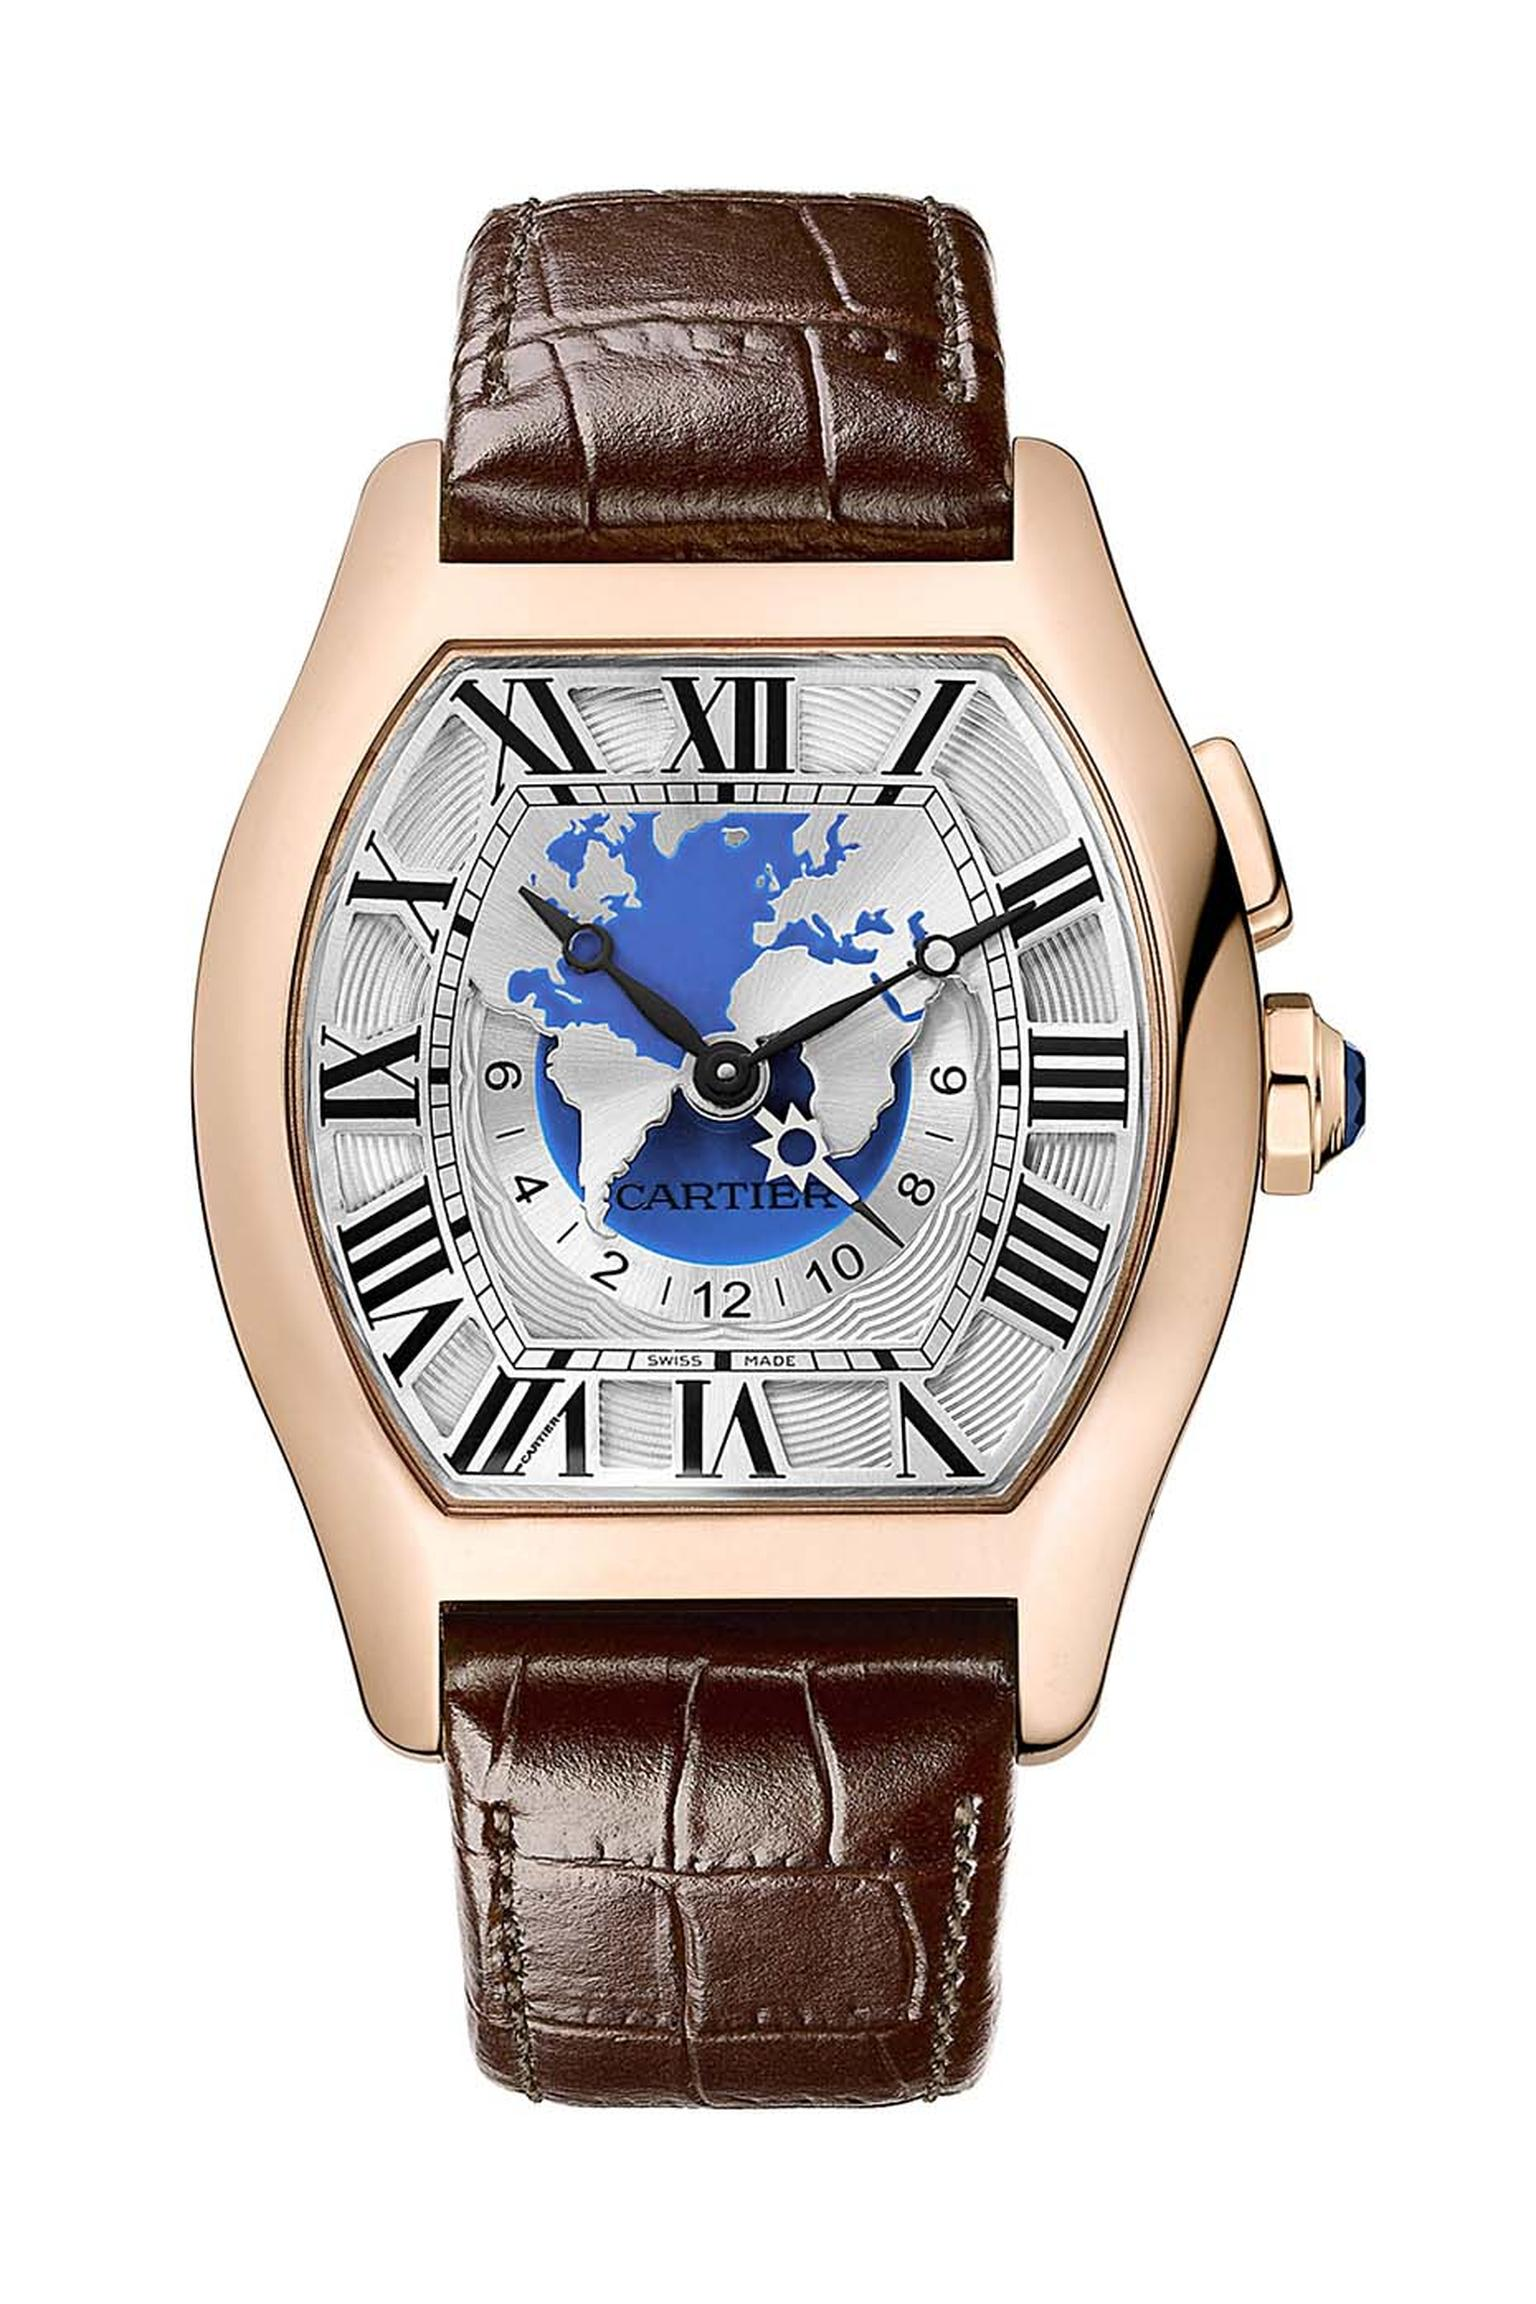 One of Cartier's Fine Watchmaking models features this elegant interpretation of the World Time function.